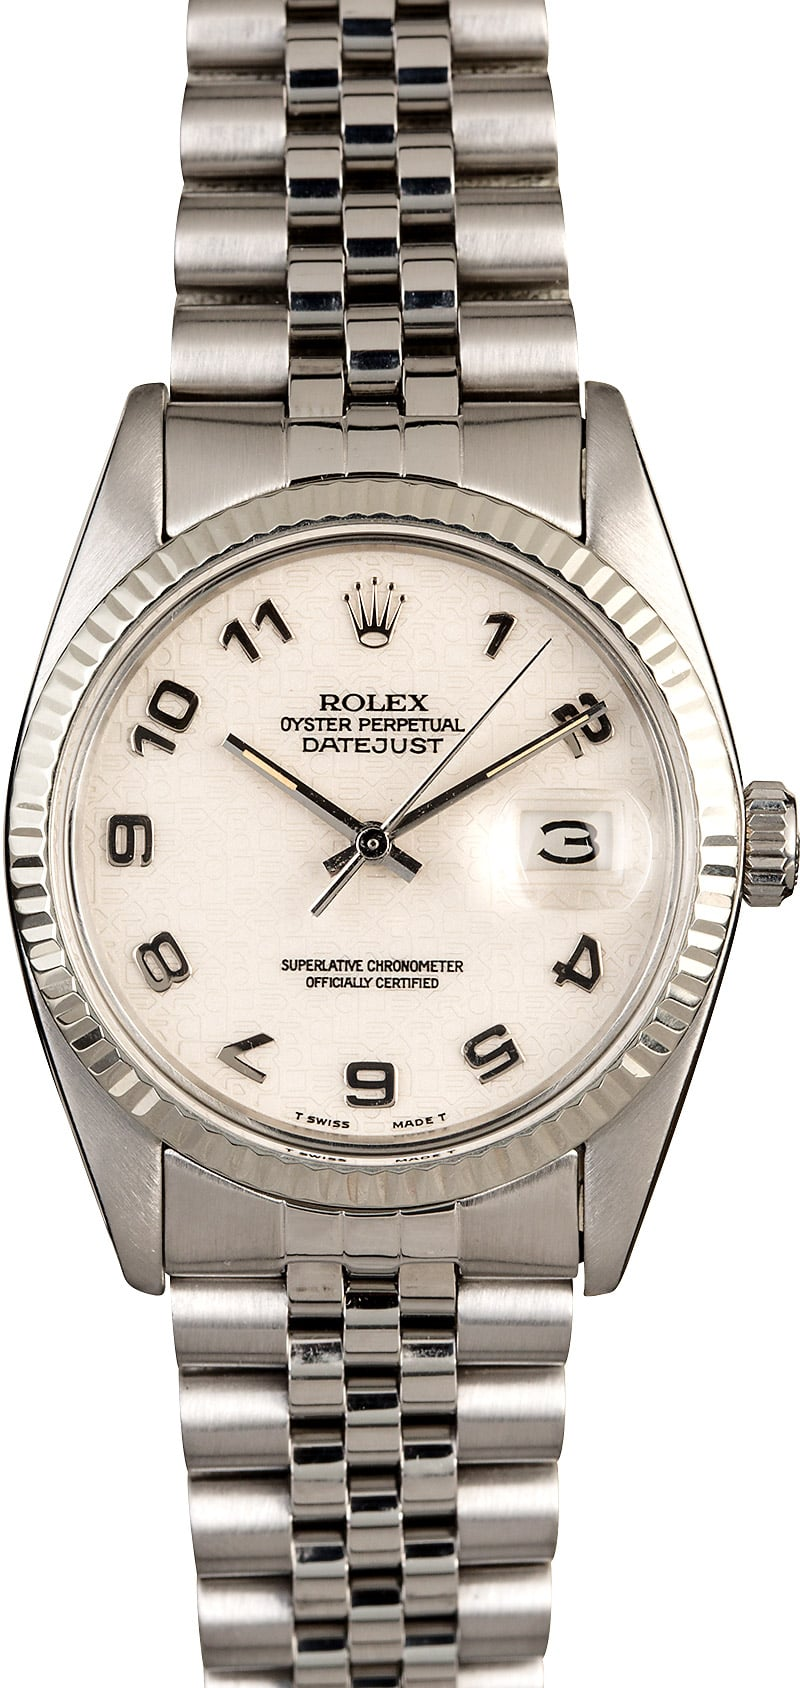 rolex oyster perpetual datejust stainless steel 16014. Black Bedroom Furniture Sets. Home Design Ideas